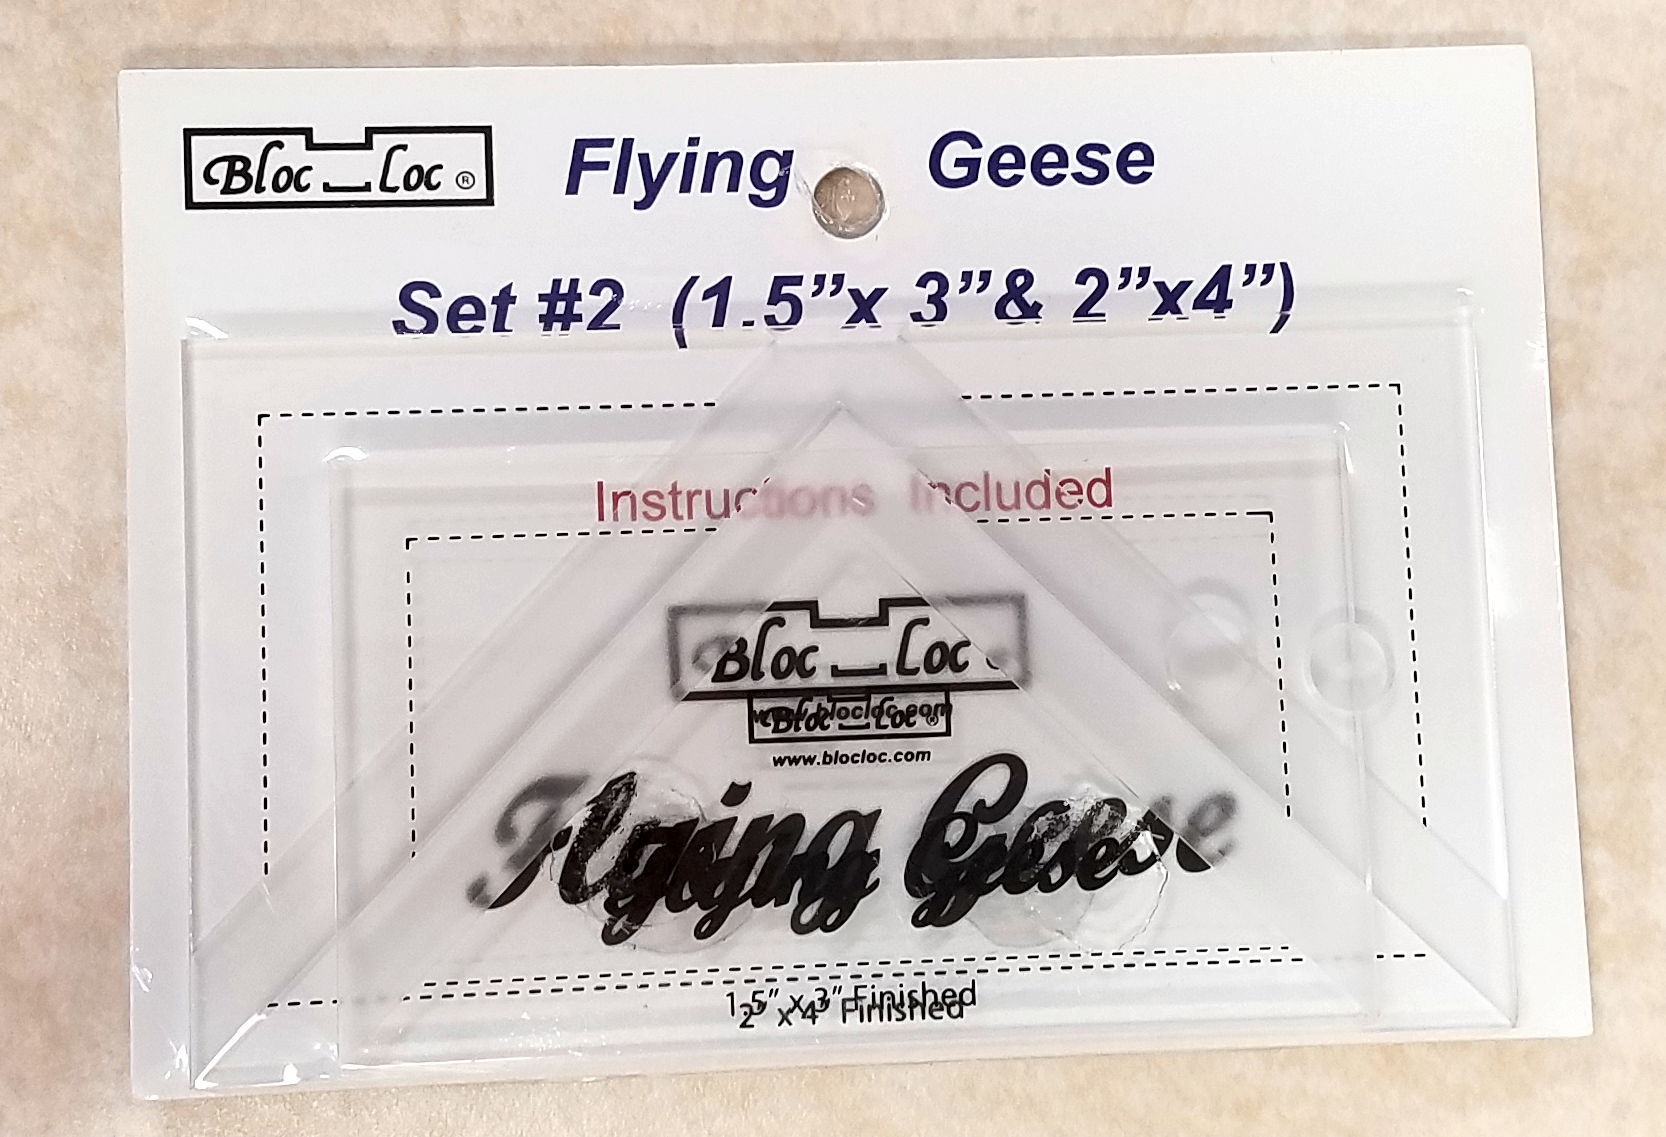 Bloc Loc Flying Geese Square Up Ruler Set #2